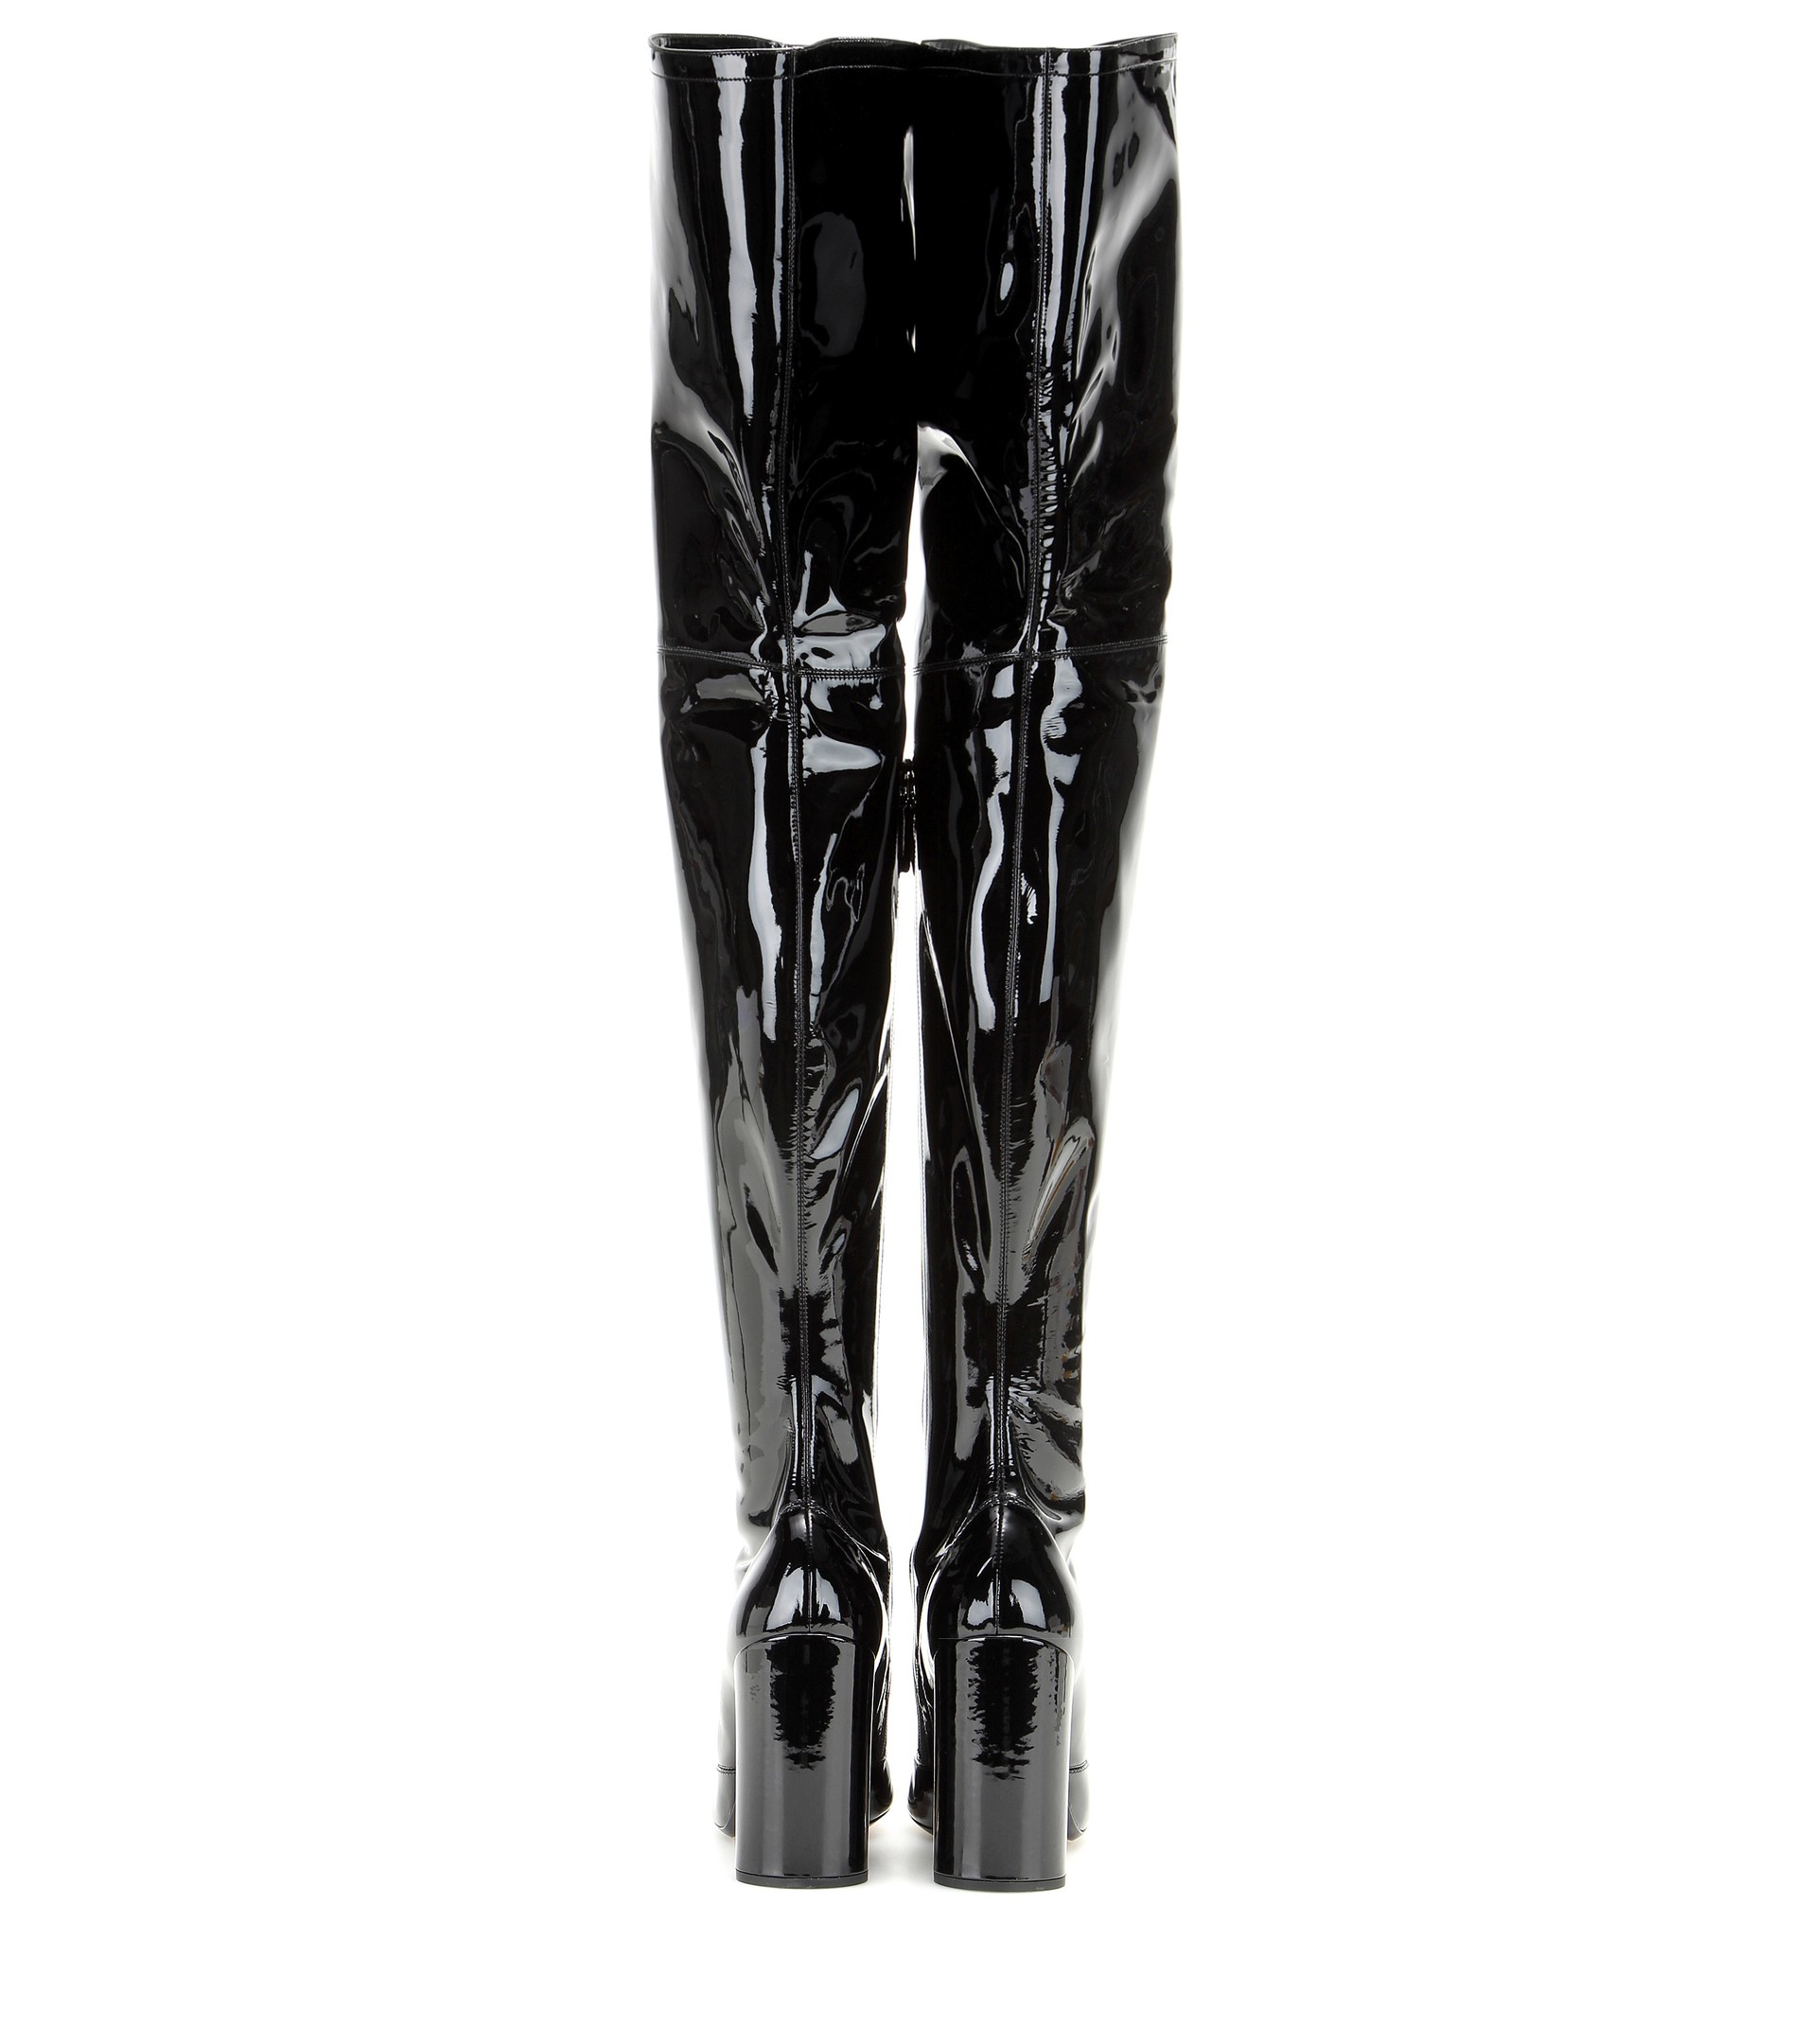 Marc jacobs Patent-Leather Over-The-Knee Boots in Black | Lyst